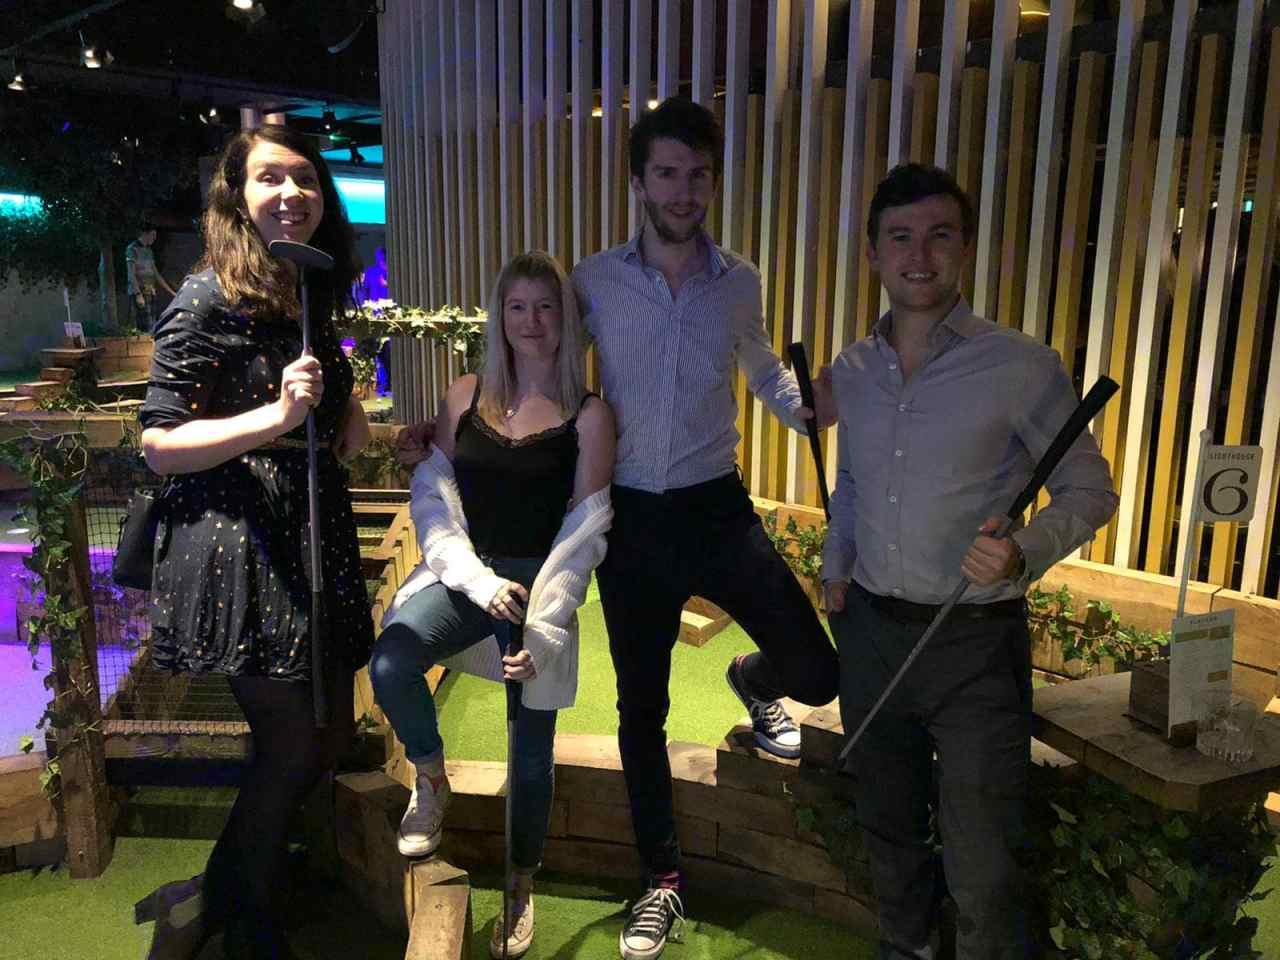 Group at Swingers golf in the City